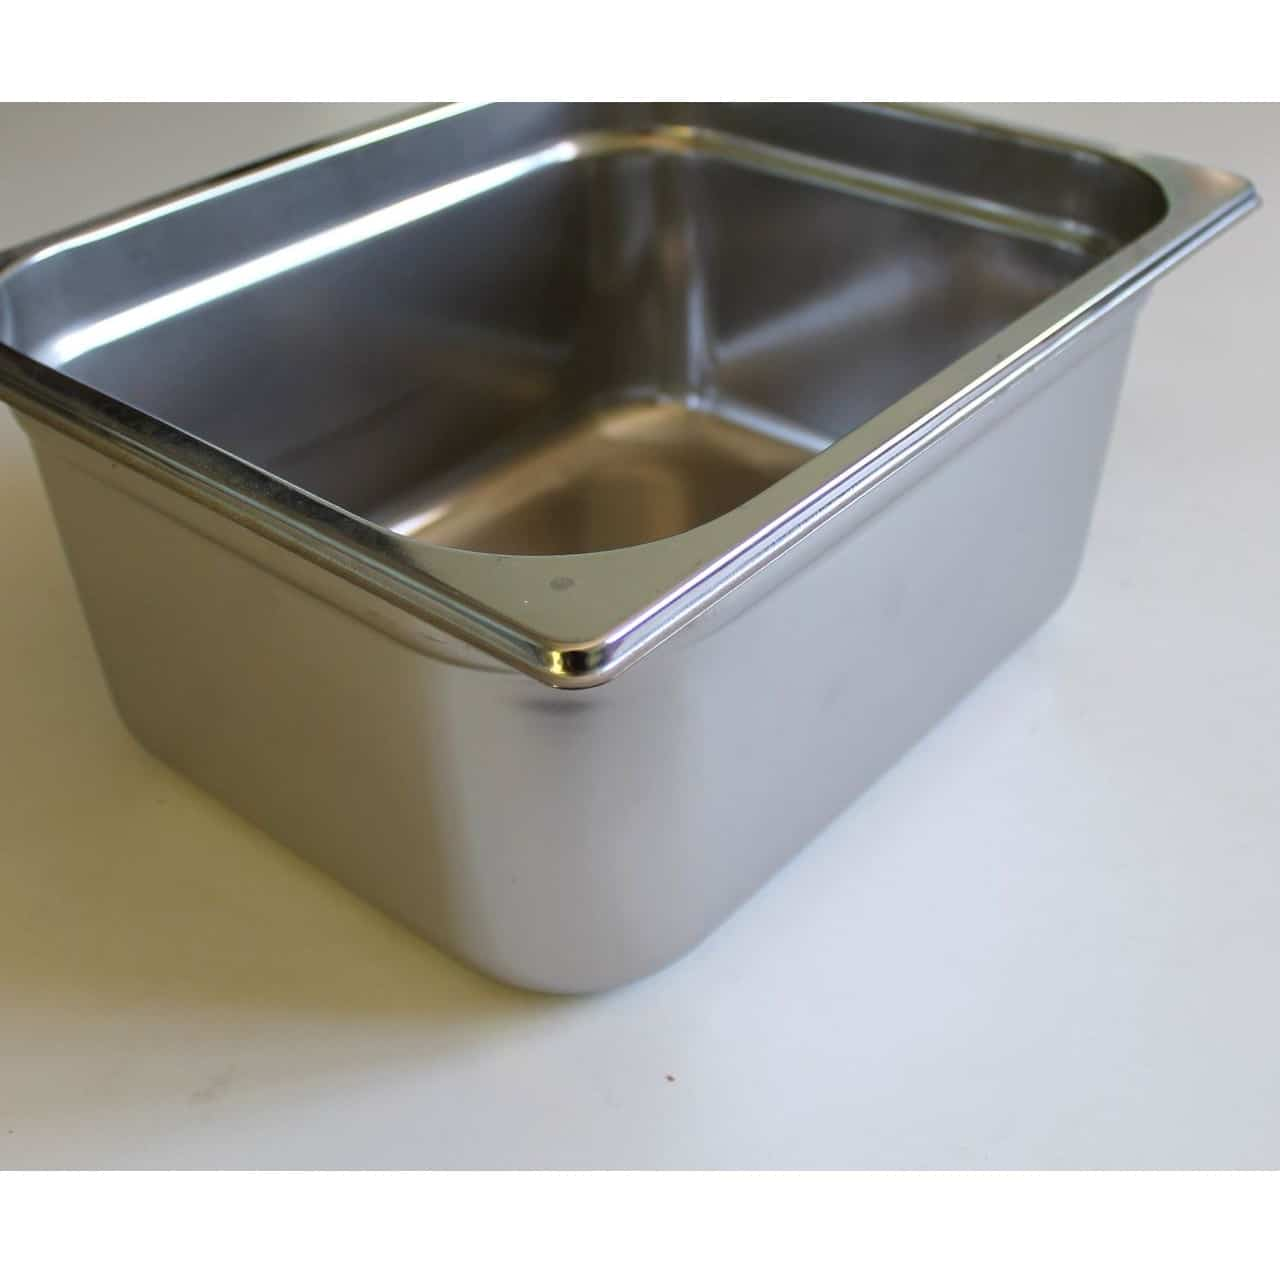 6 bacs inox gn 1 3 profondeur 65 mm kvt occasions for Bac inox cuisine professionnelle